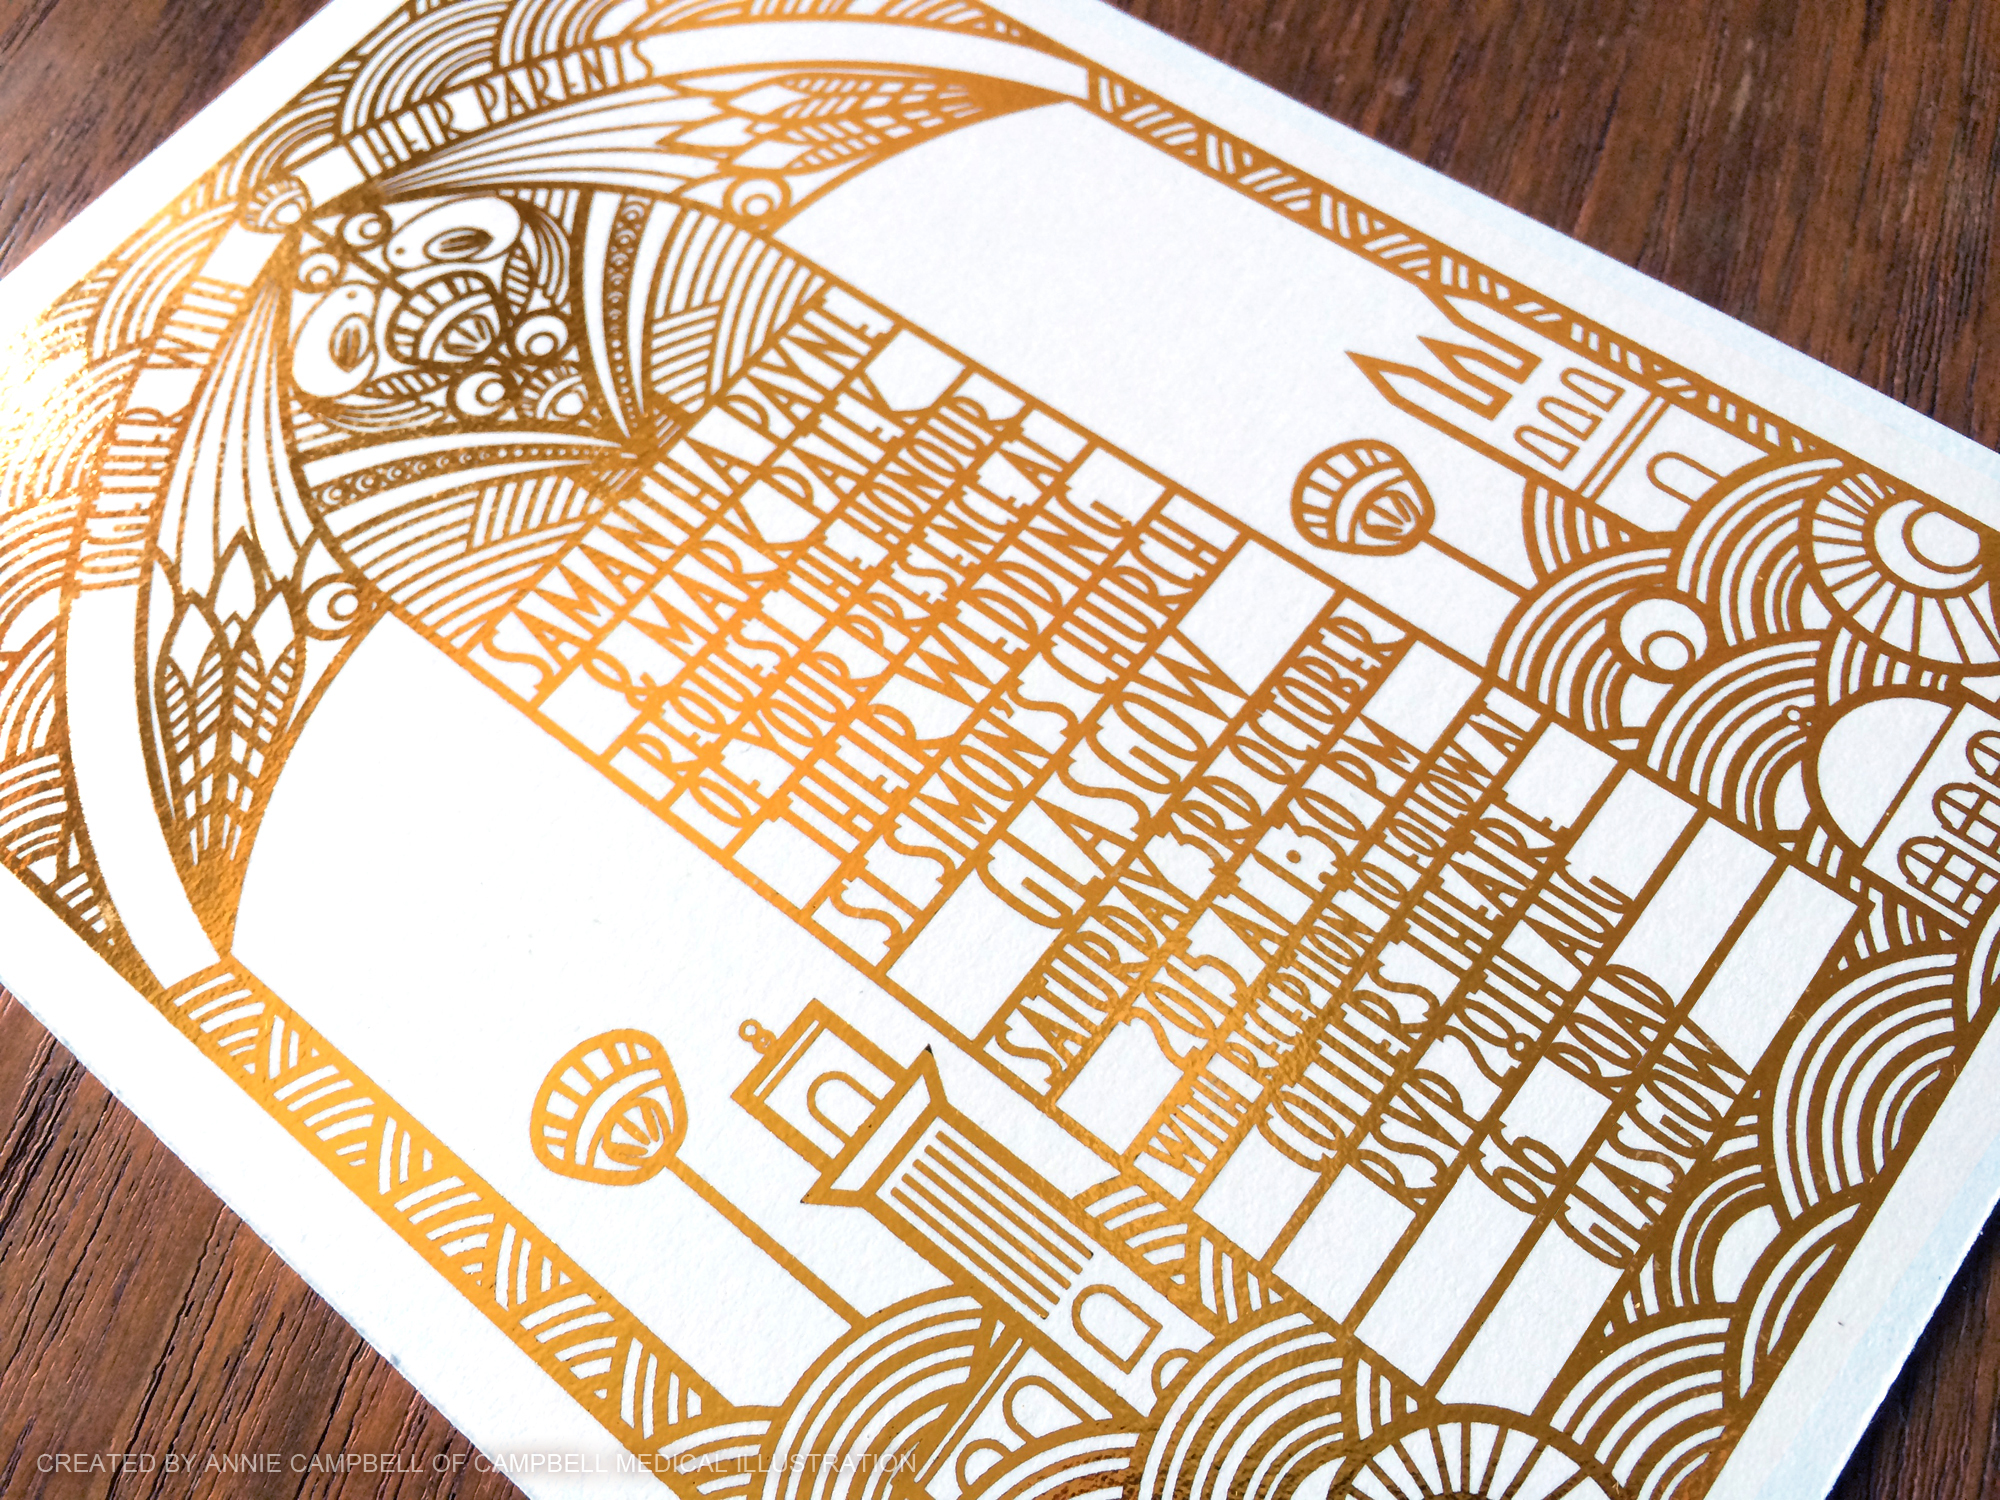 Gold_Press_Glasgow_Art_Deco_Wedding_Invitation_Invite_Closeup.jpg